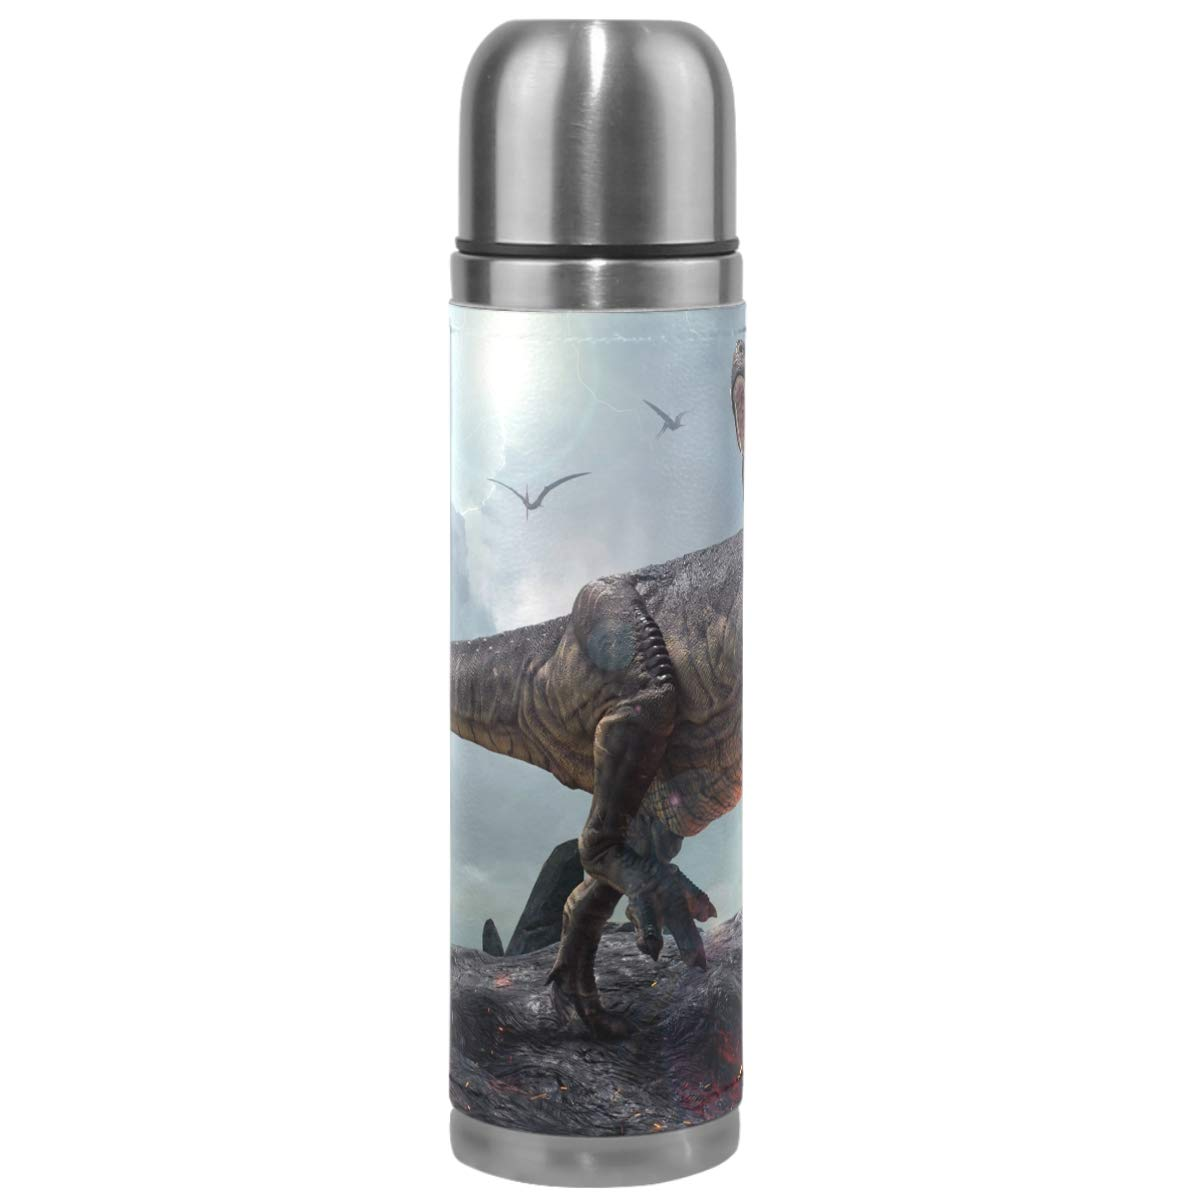 Wamika Dinosaur Animal Vacuum Insulated Stainless Steel Water Bottle, 3D Dinosaurs Sports Coffee Travel Mug Thermos Cup Genuine Leather Cover Double Walled BPA Free 17 Oz